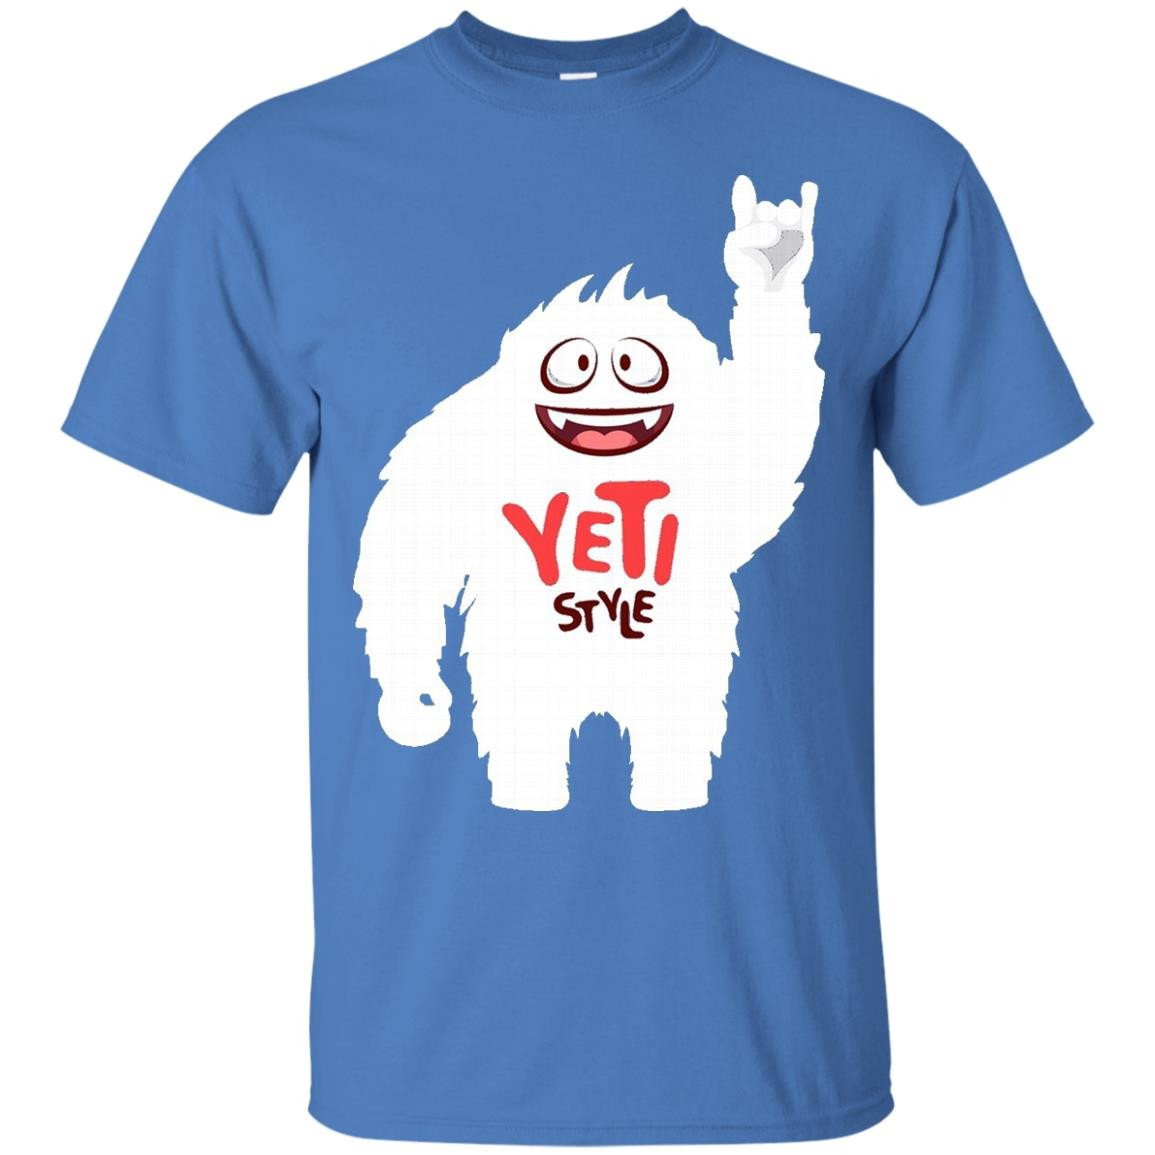 Yeti Style Shirt - ALL COLORS Mens Womens Kids Yeti Tshirt - T-Shirt